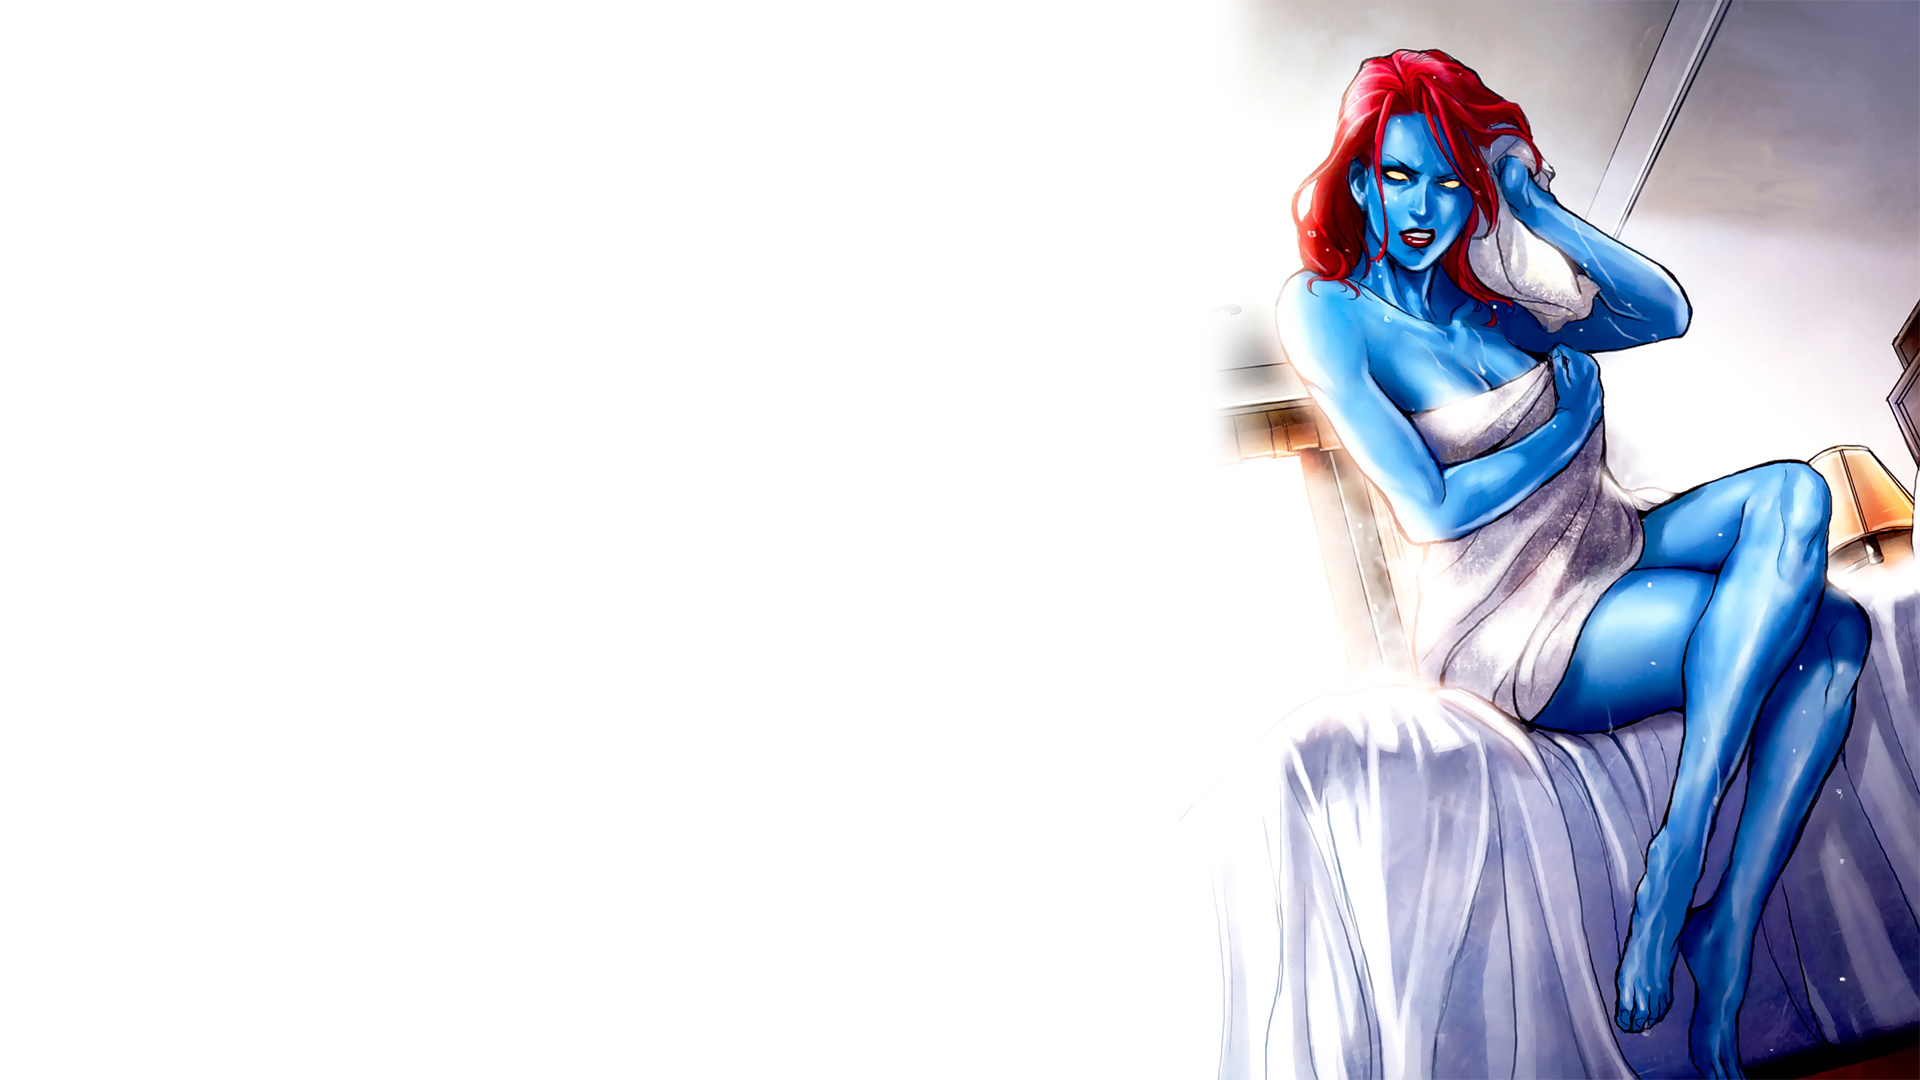 X-Men beds towels mystique HD Wallpaper